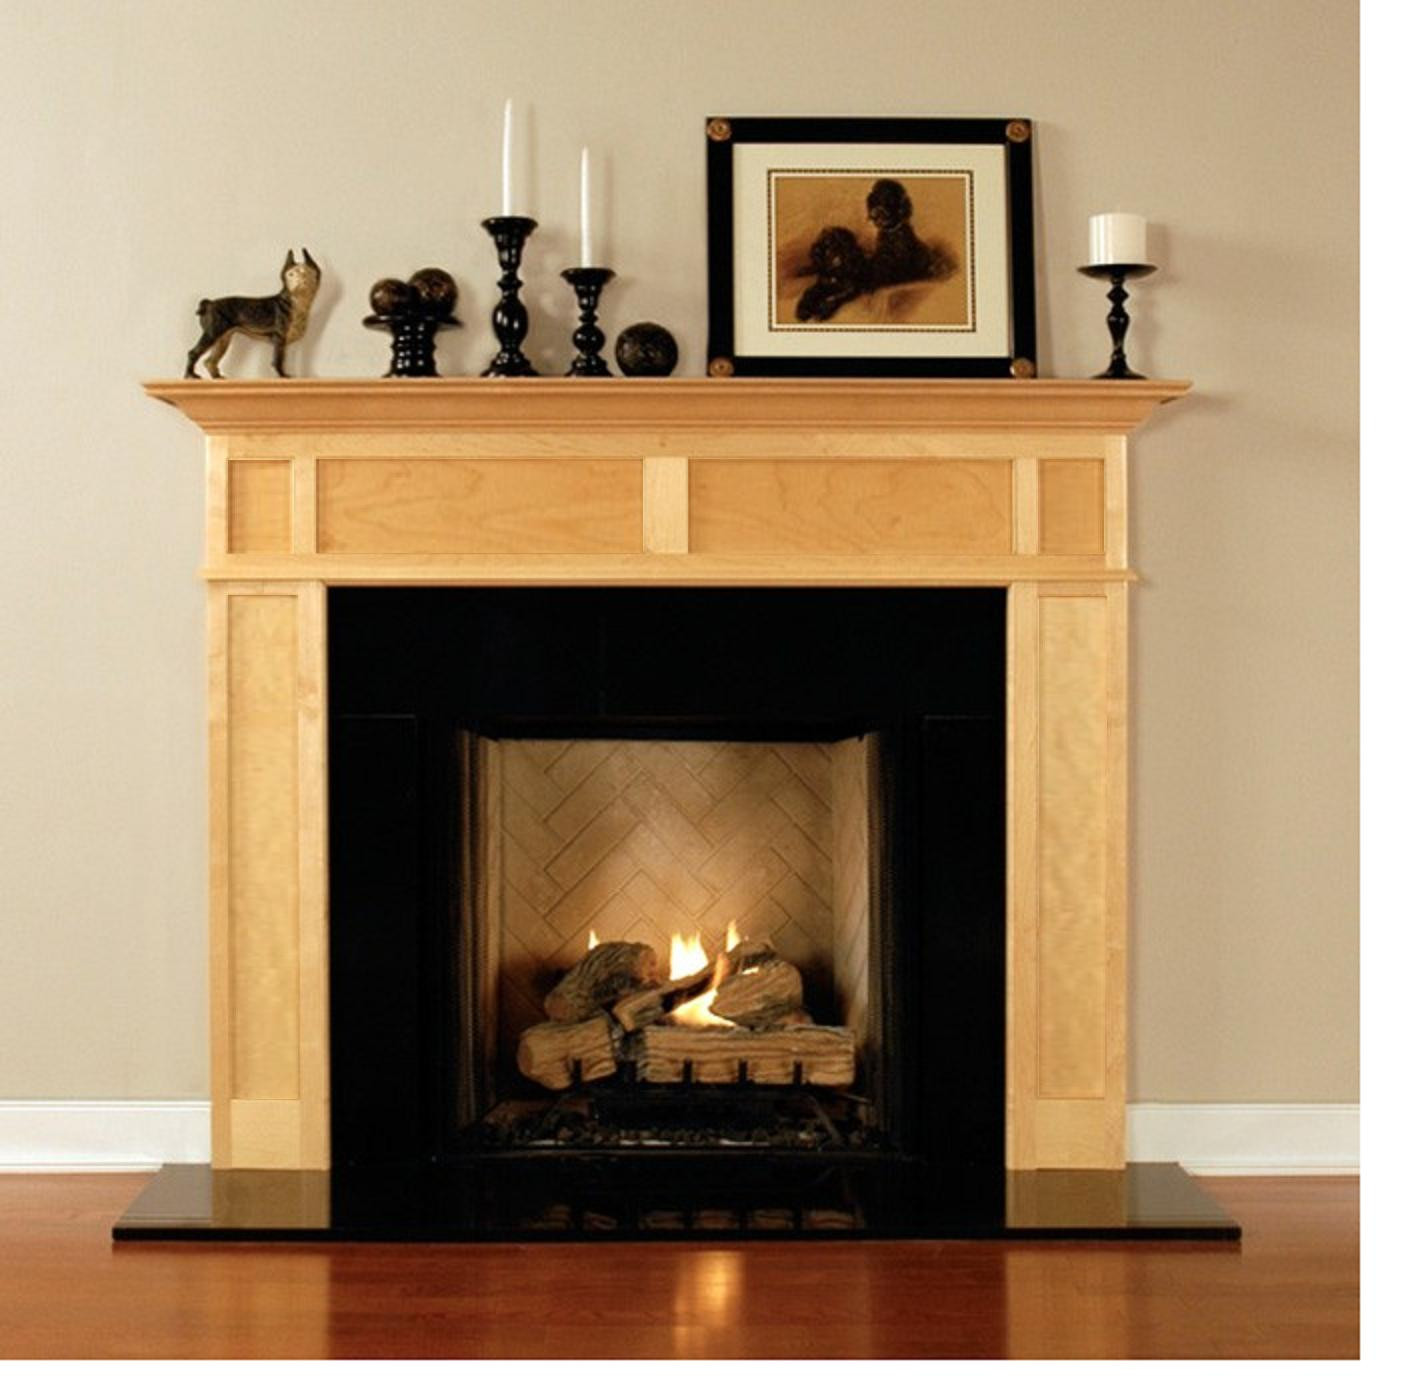 Best ideas about Wood Fireplace Mantels . Save or Pin Wood Fireplace Mantels for Fireplaces Surrounds Now.